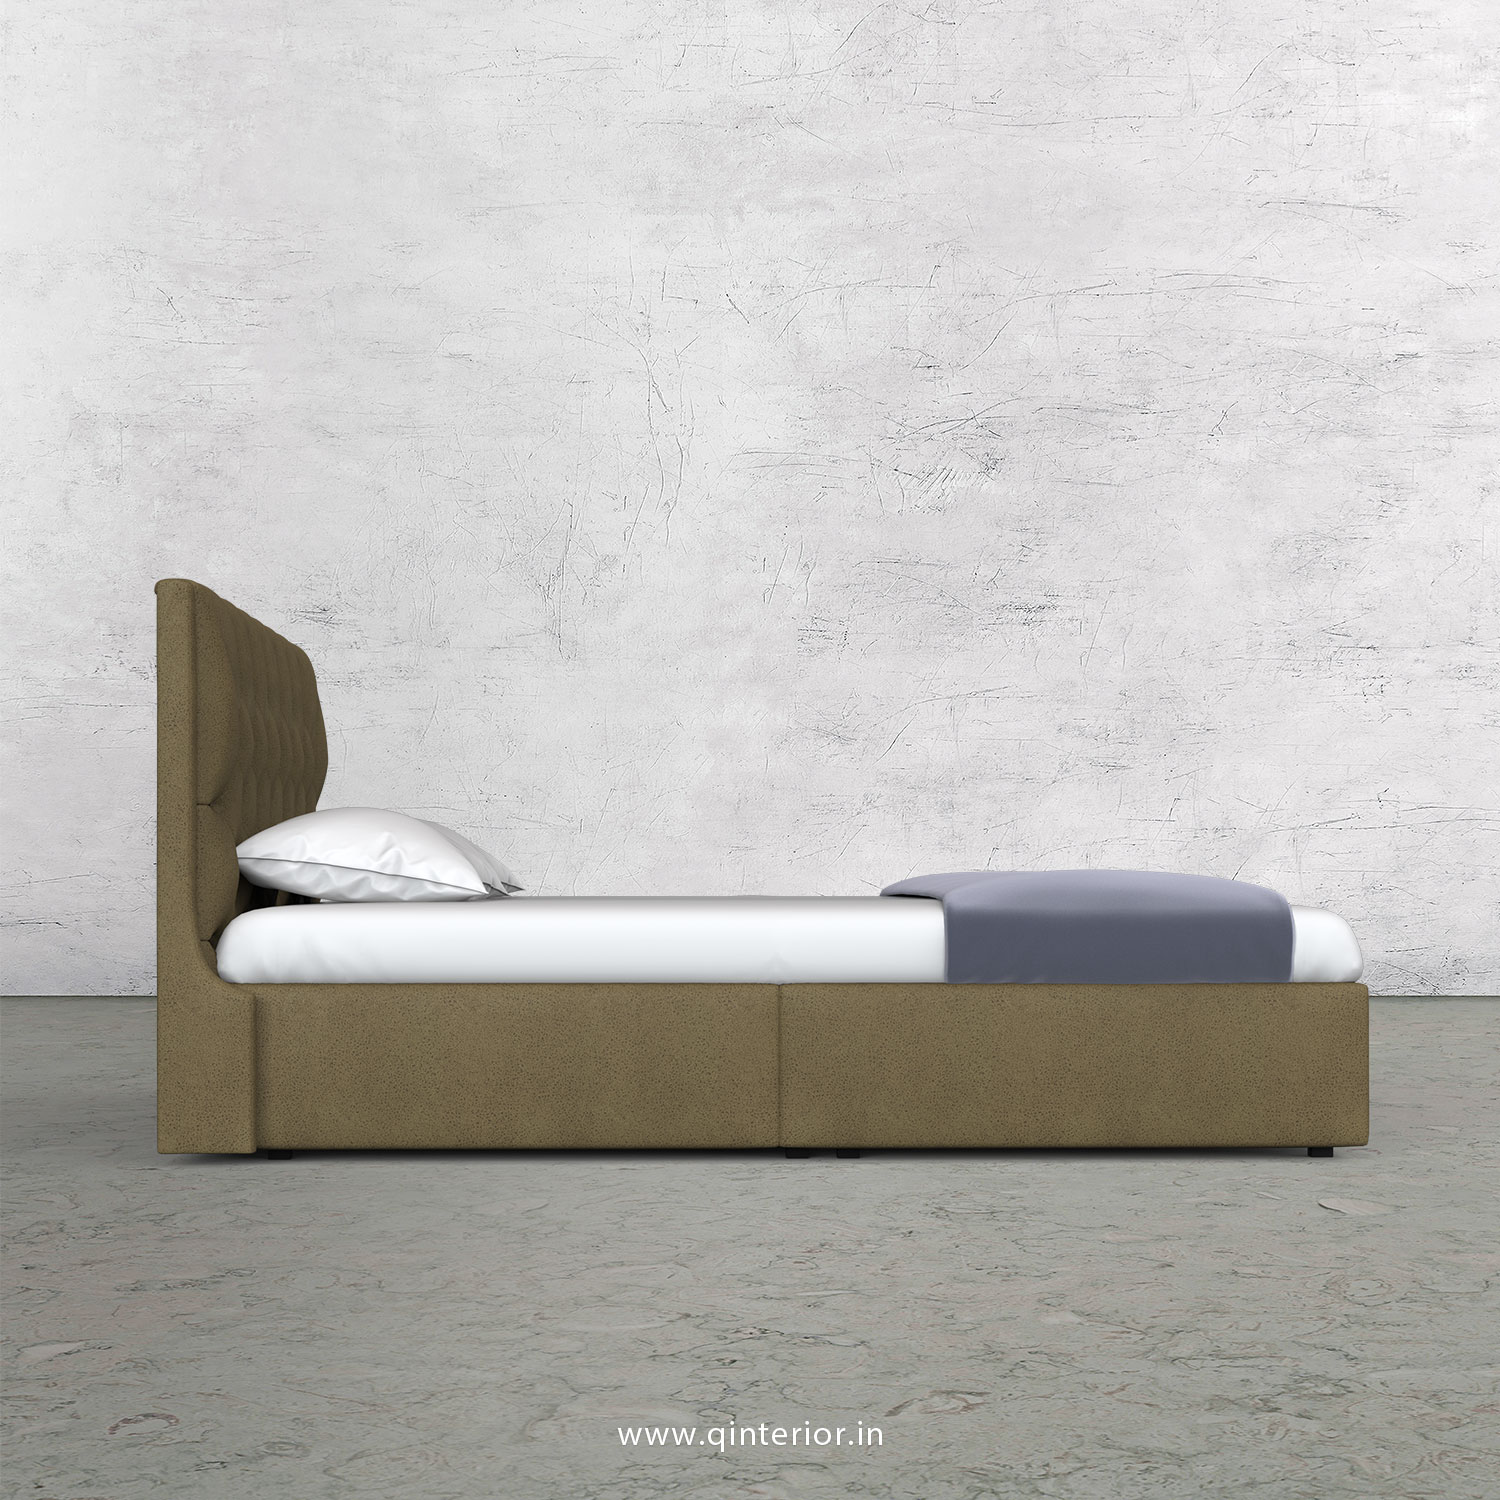 Scorpius Queen Bed in Fab Leather Fabric - QBD009 FL01